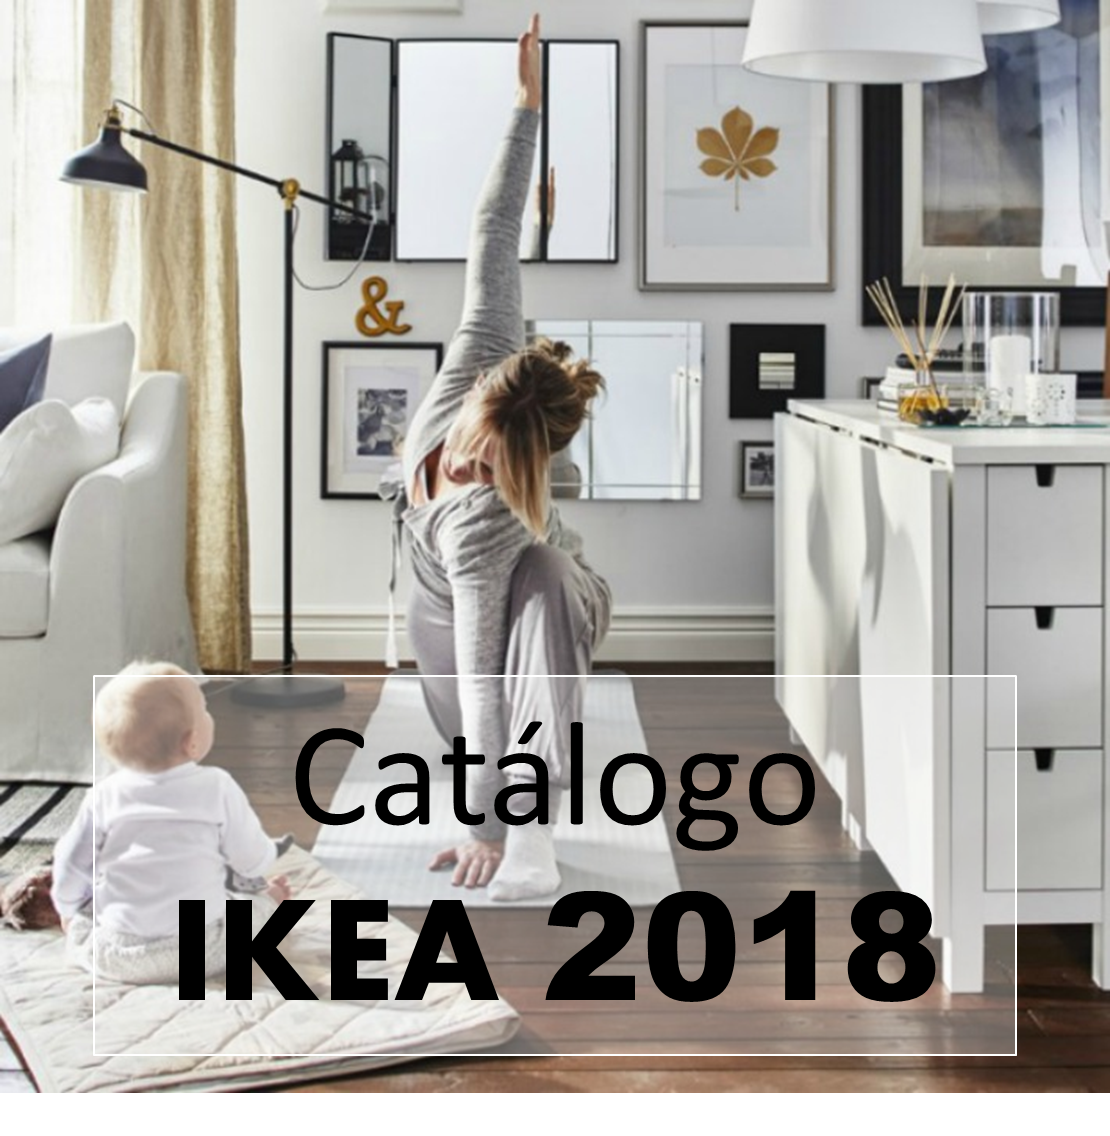 Decoraci n f cil cat logo ikea 2018 las primeras for Ikea catalogo 2017 librerie